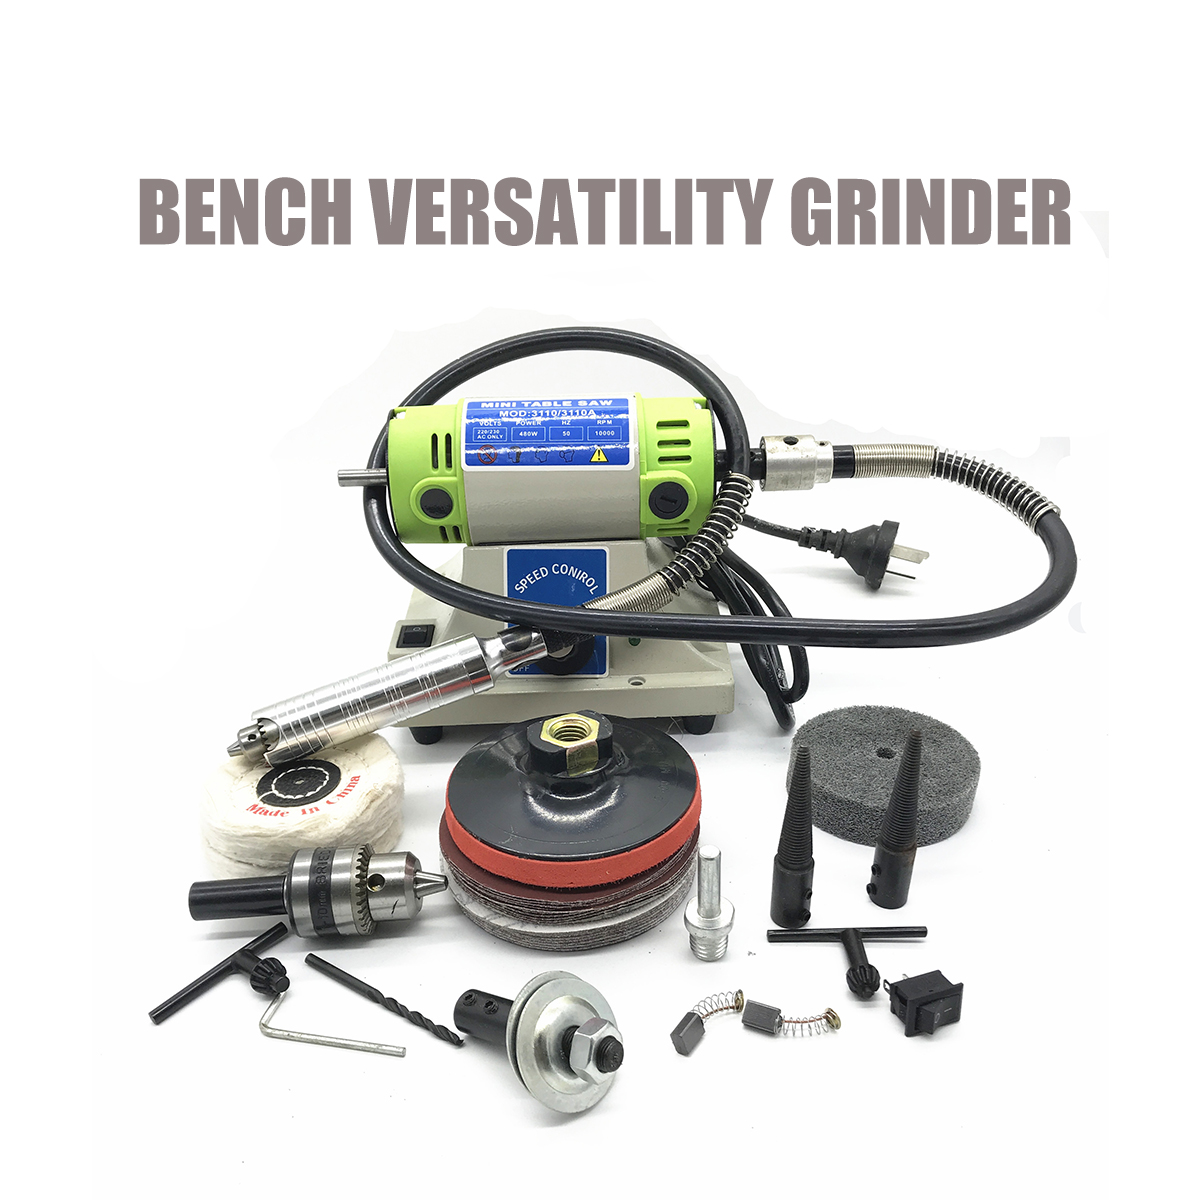 Mini Bench Grinder Electric Versatility Grinding Machine 4mm Chuck Variable Speed Rotary Tool With Flexible Tube Power Tools machine tool